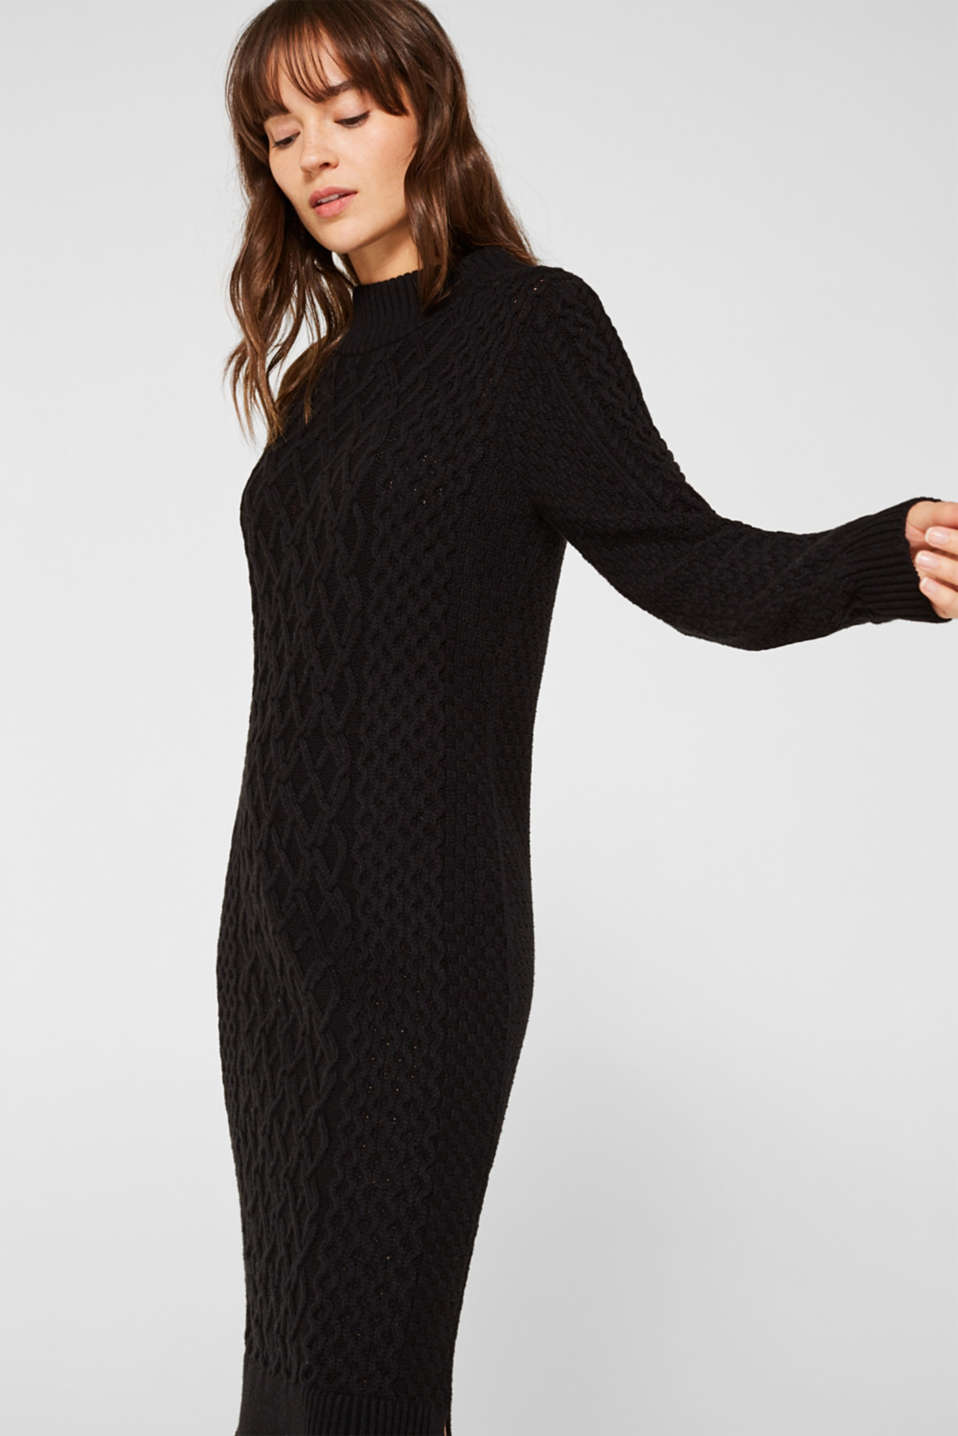 Esprit - Knitted dress with mix of textures